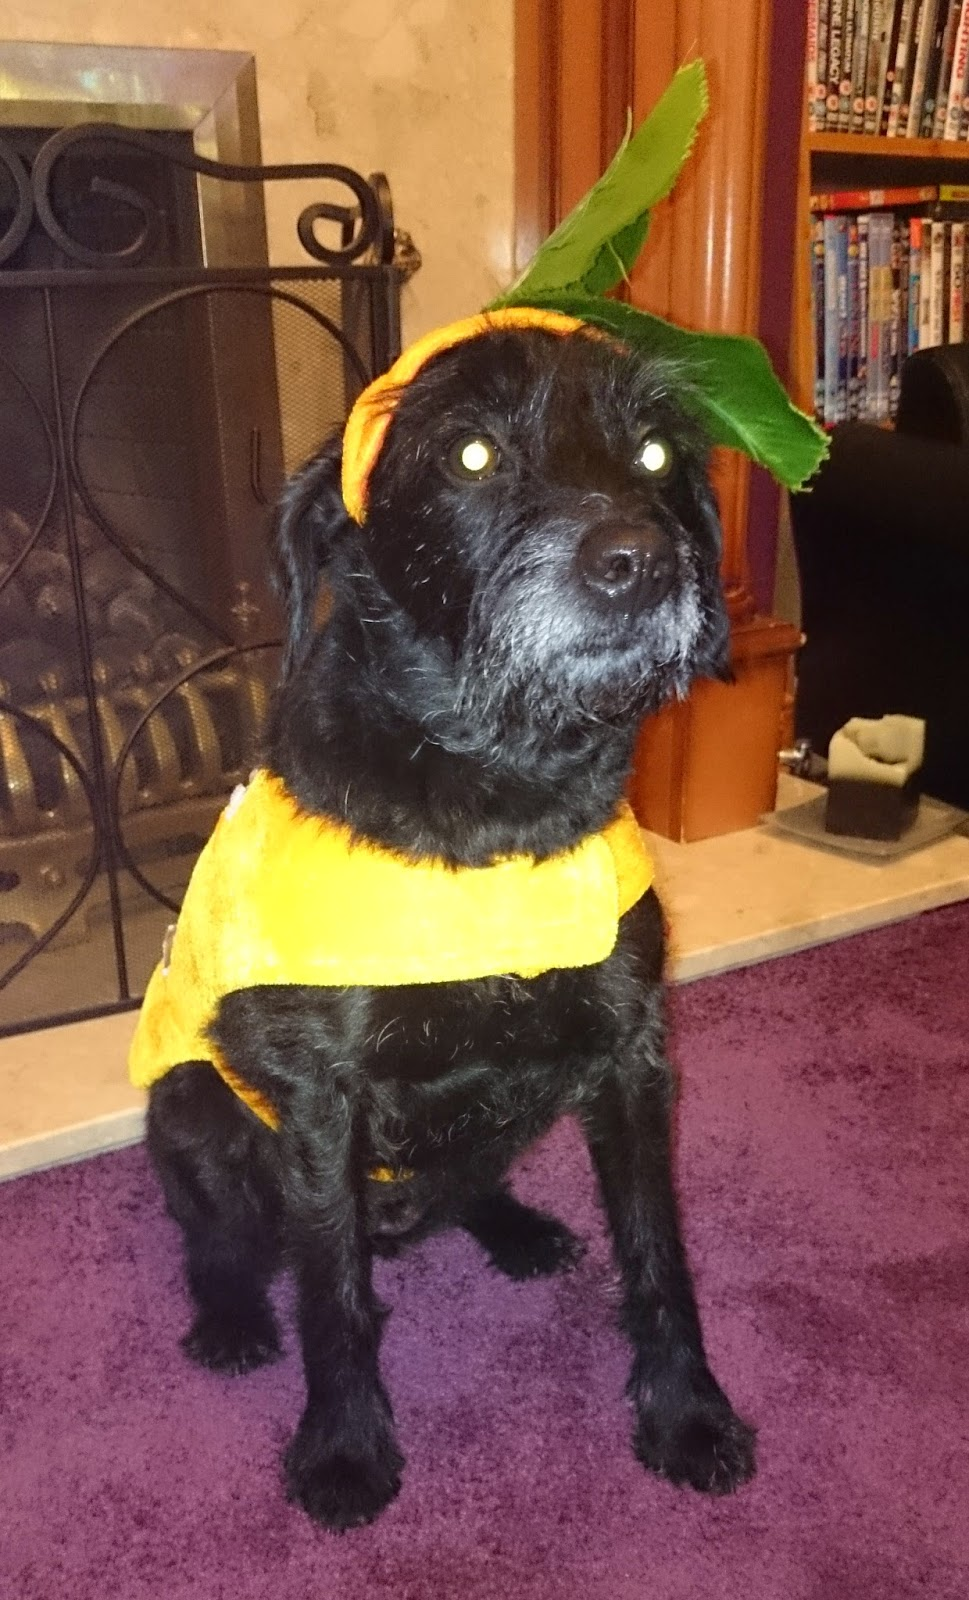 halloween pumpkin dog costume outfit orange green leaf hat border terrier cross poodle dog puppy pooch